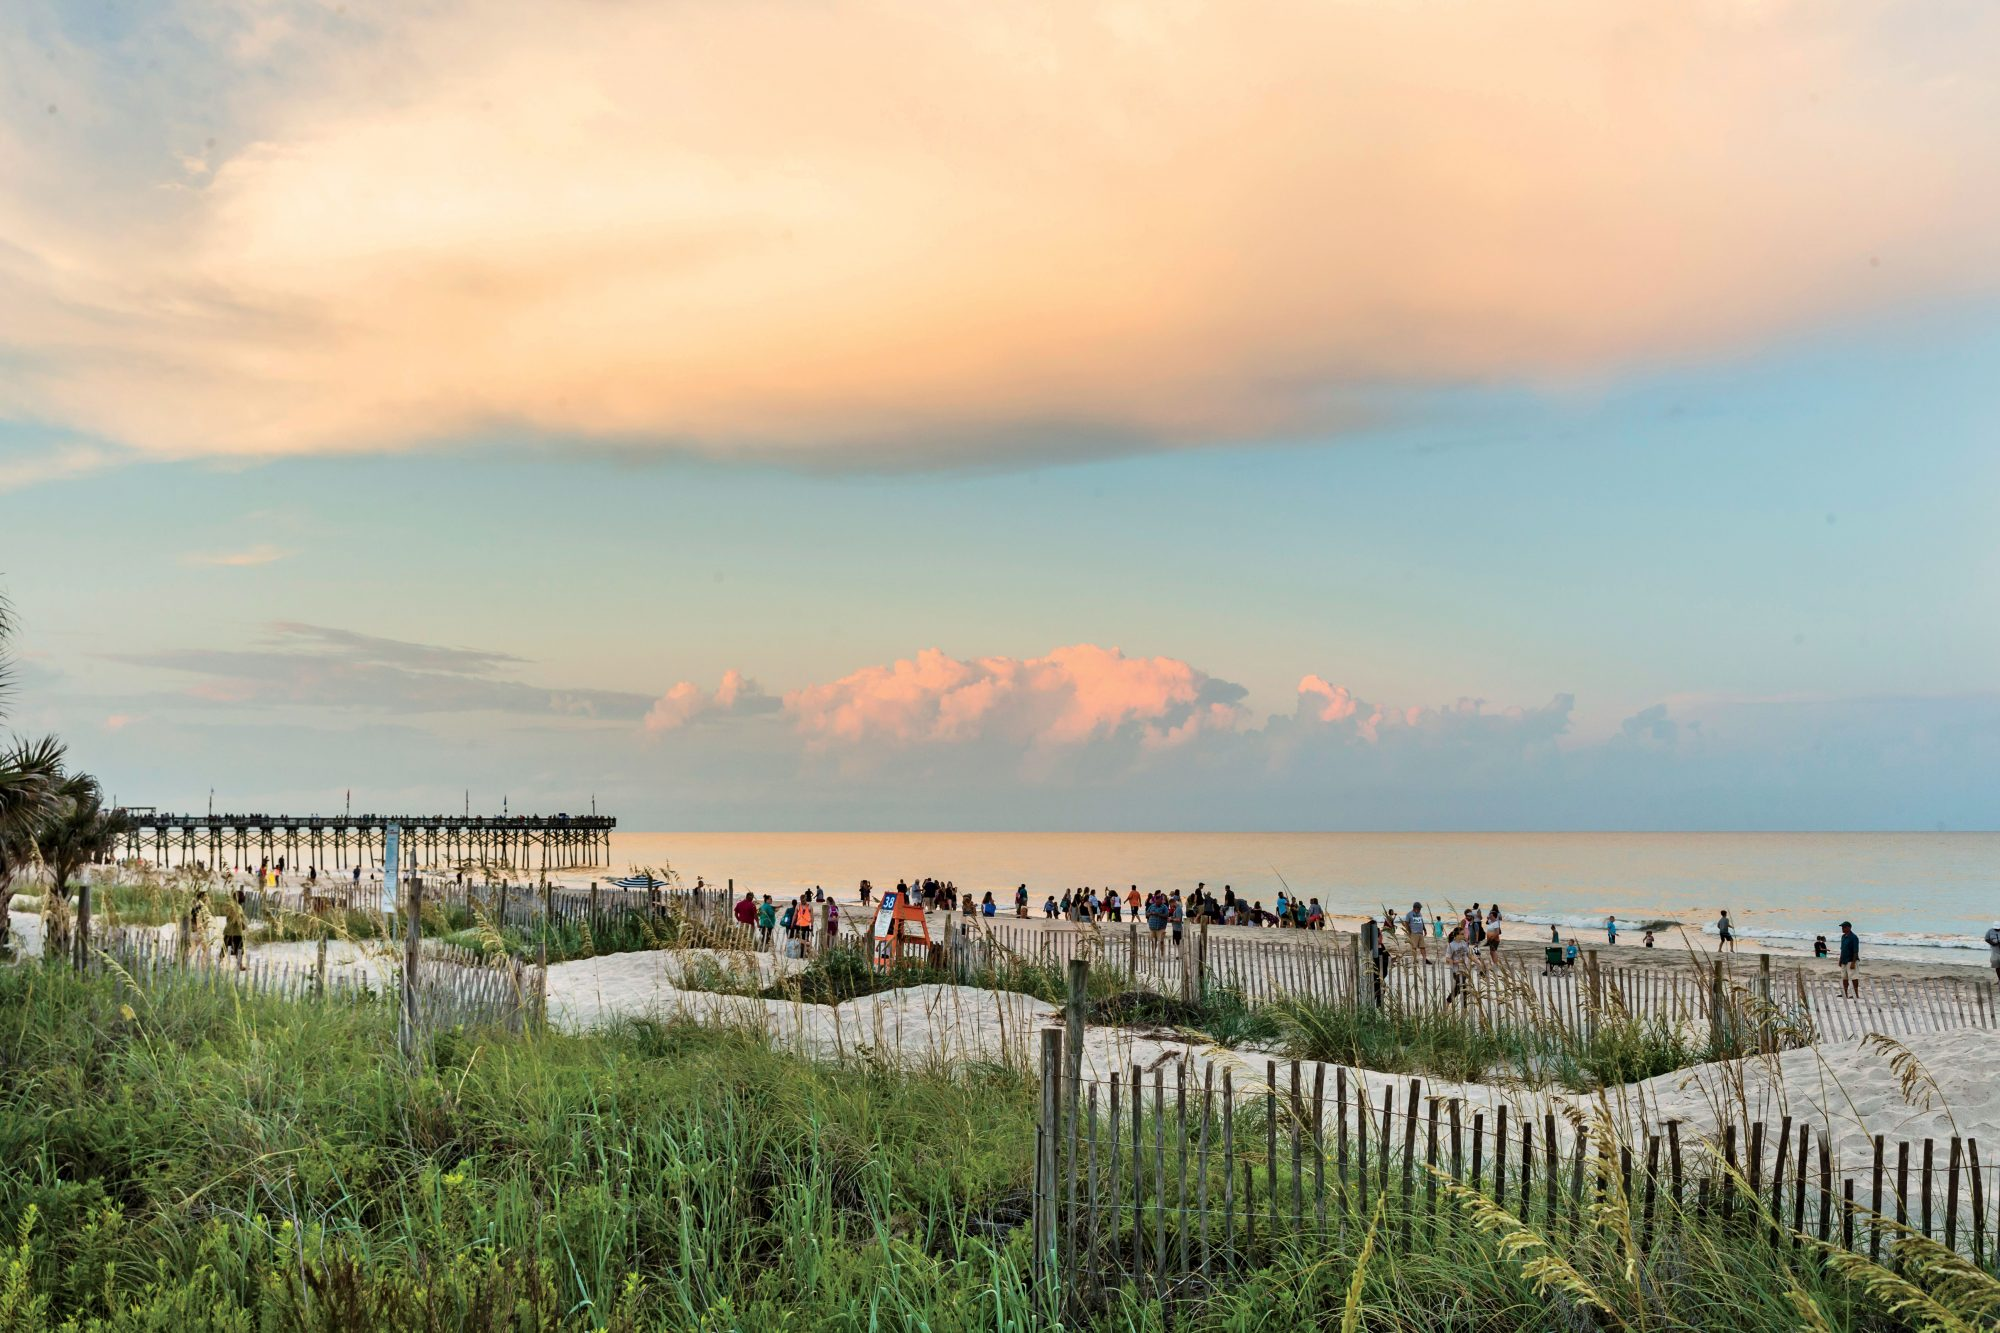 6. Myrtle Beach, South Carolina